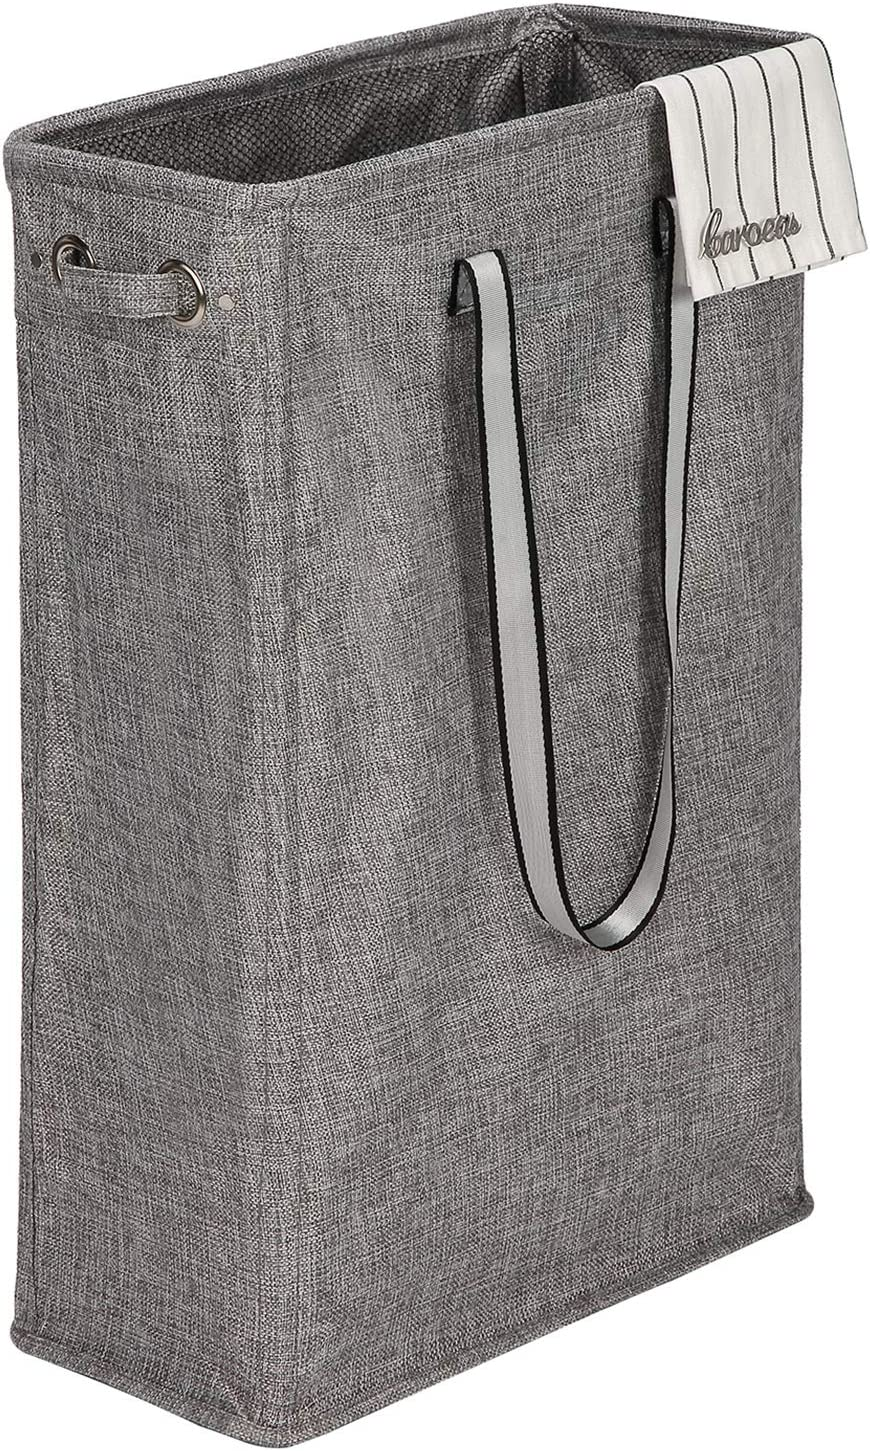 """Caroeas Handy Hanging Laundry Basket, 24"""" Tall& Slim Laundry Hamper Collapsible Travel Laundry Bag Waterproof with Breathable Mesh Cover & Silver Handle(Updraded Linen Fabric)"""